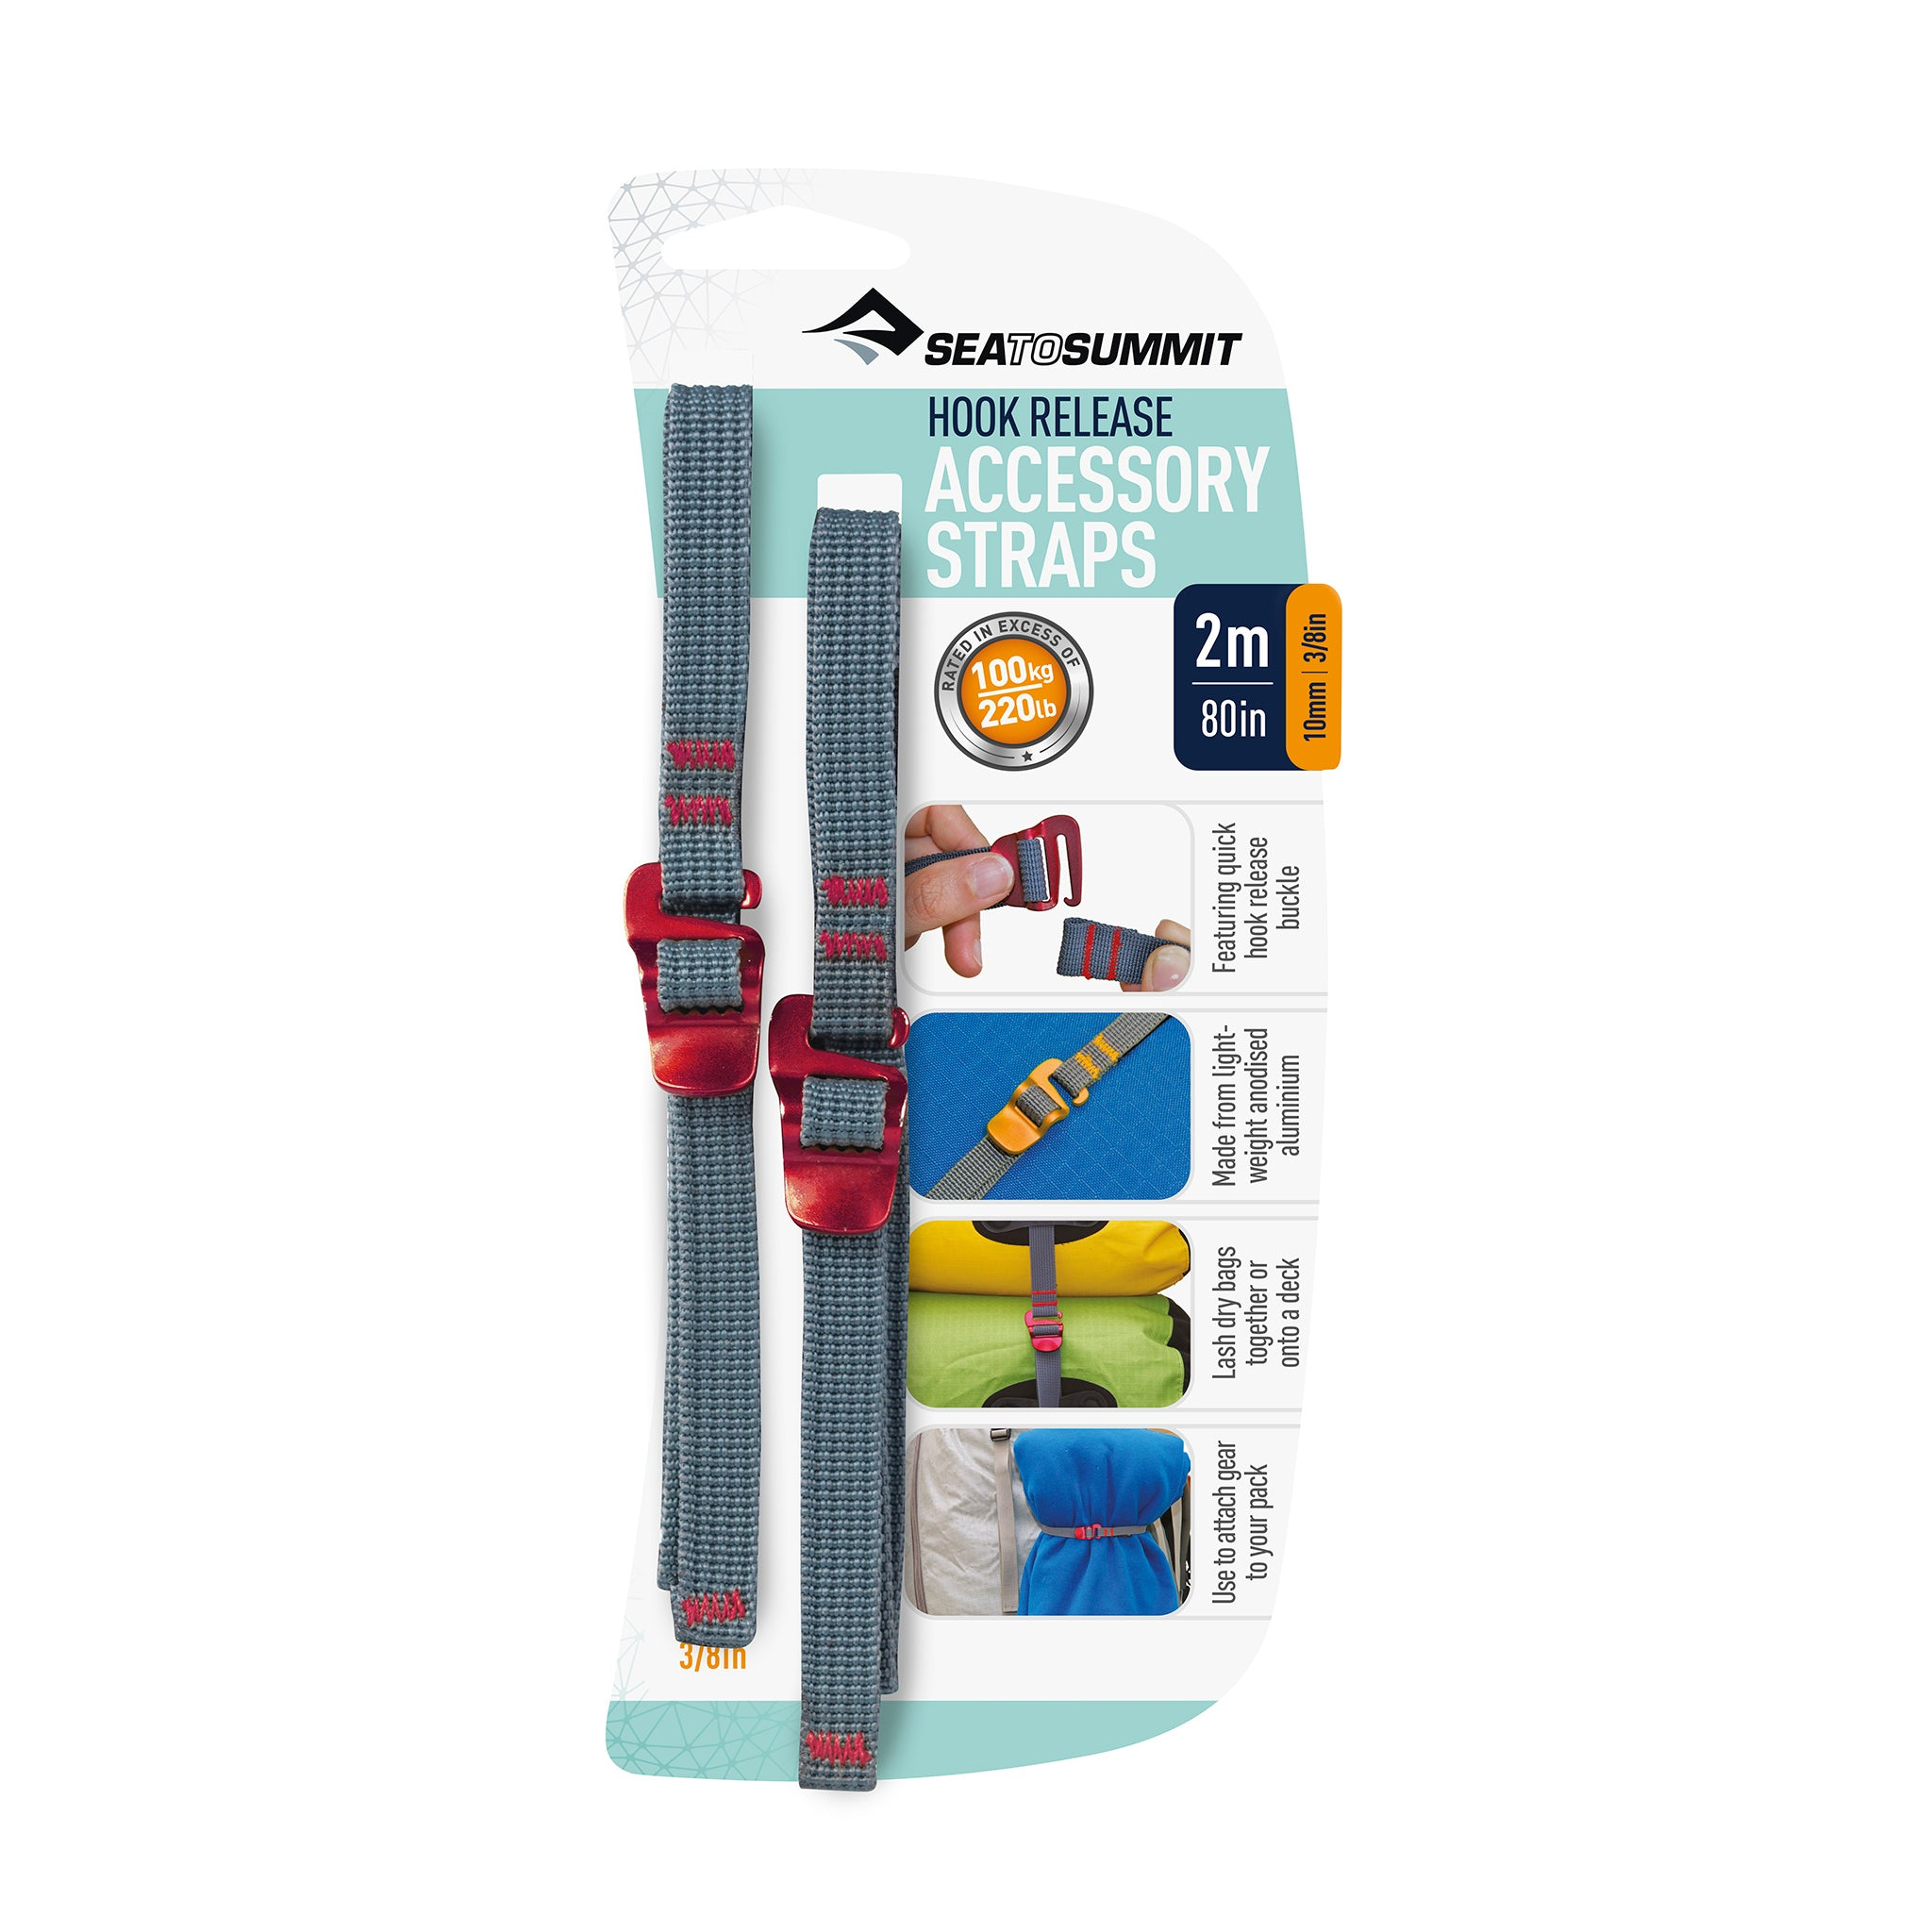 Accessory Strap with Hook Release _ 2 meters